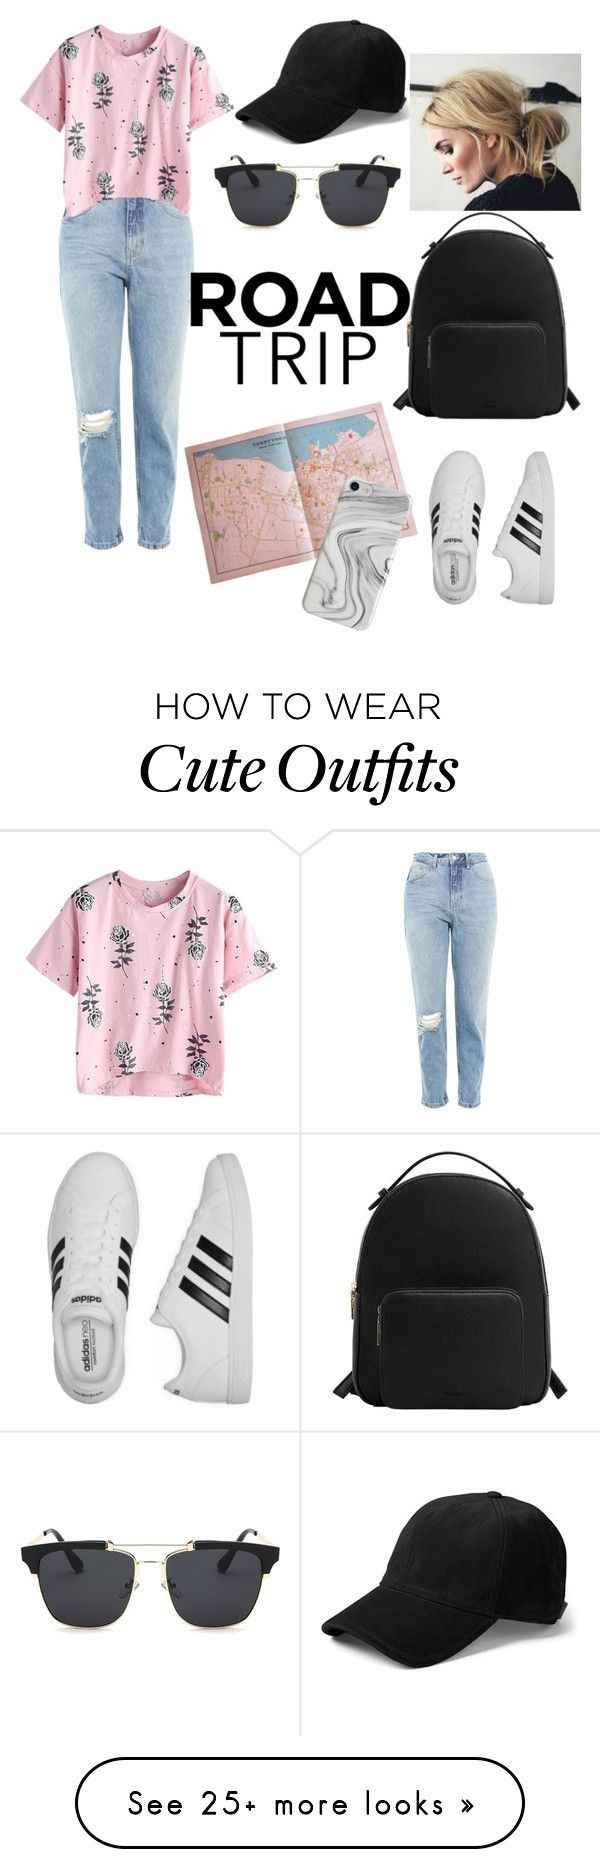 """""""Road Trip outfit"""" by dulcefashion on Polyvore featuring Topshop, adidas, MANGO, rag & bone and Recover"""